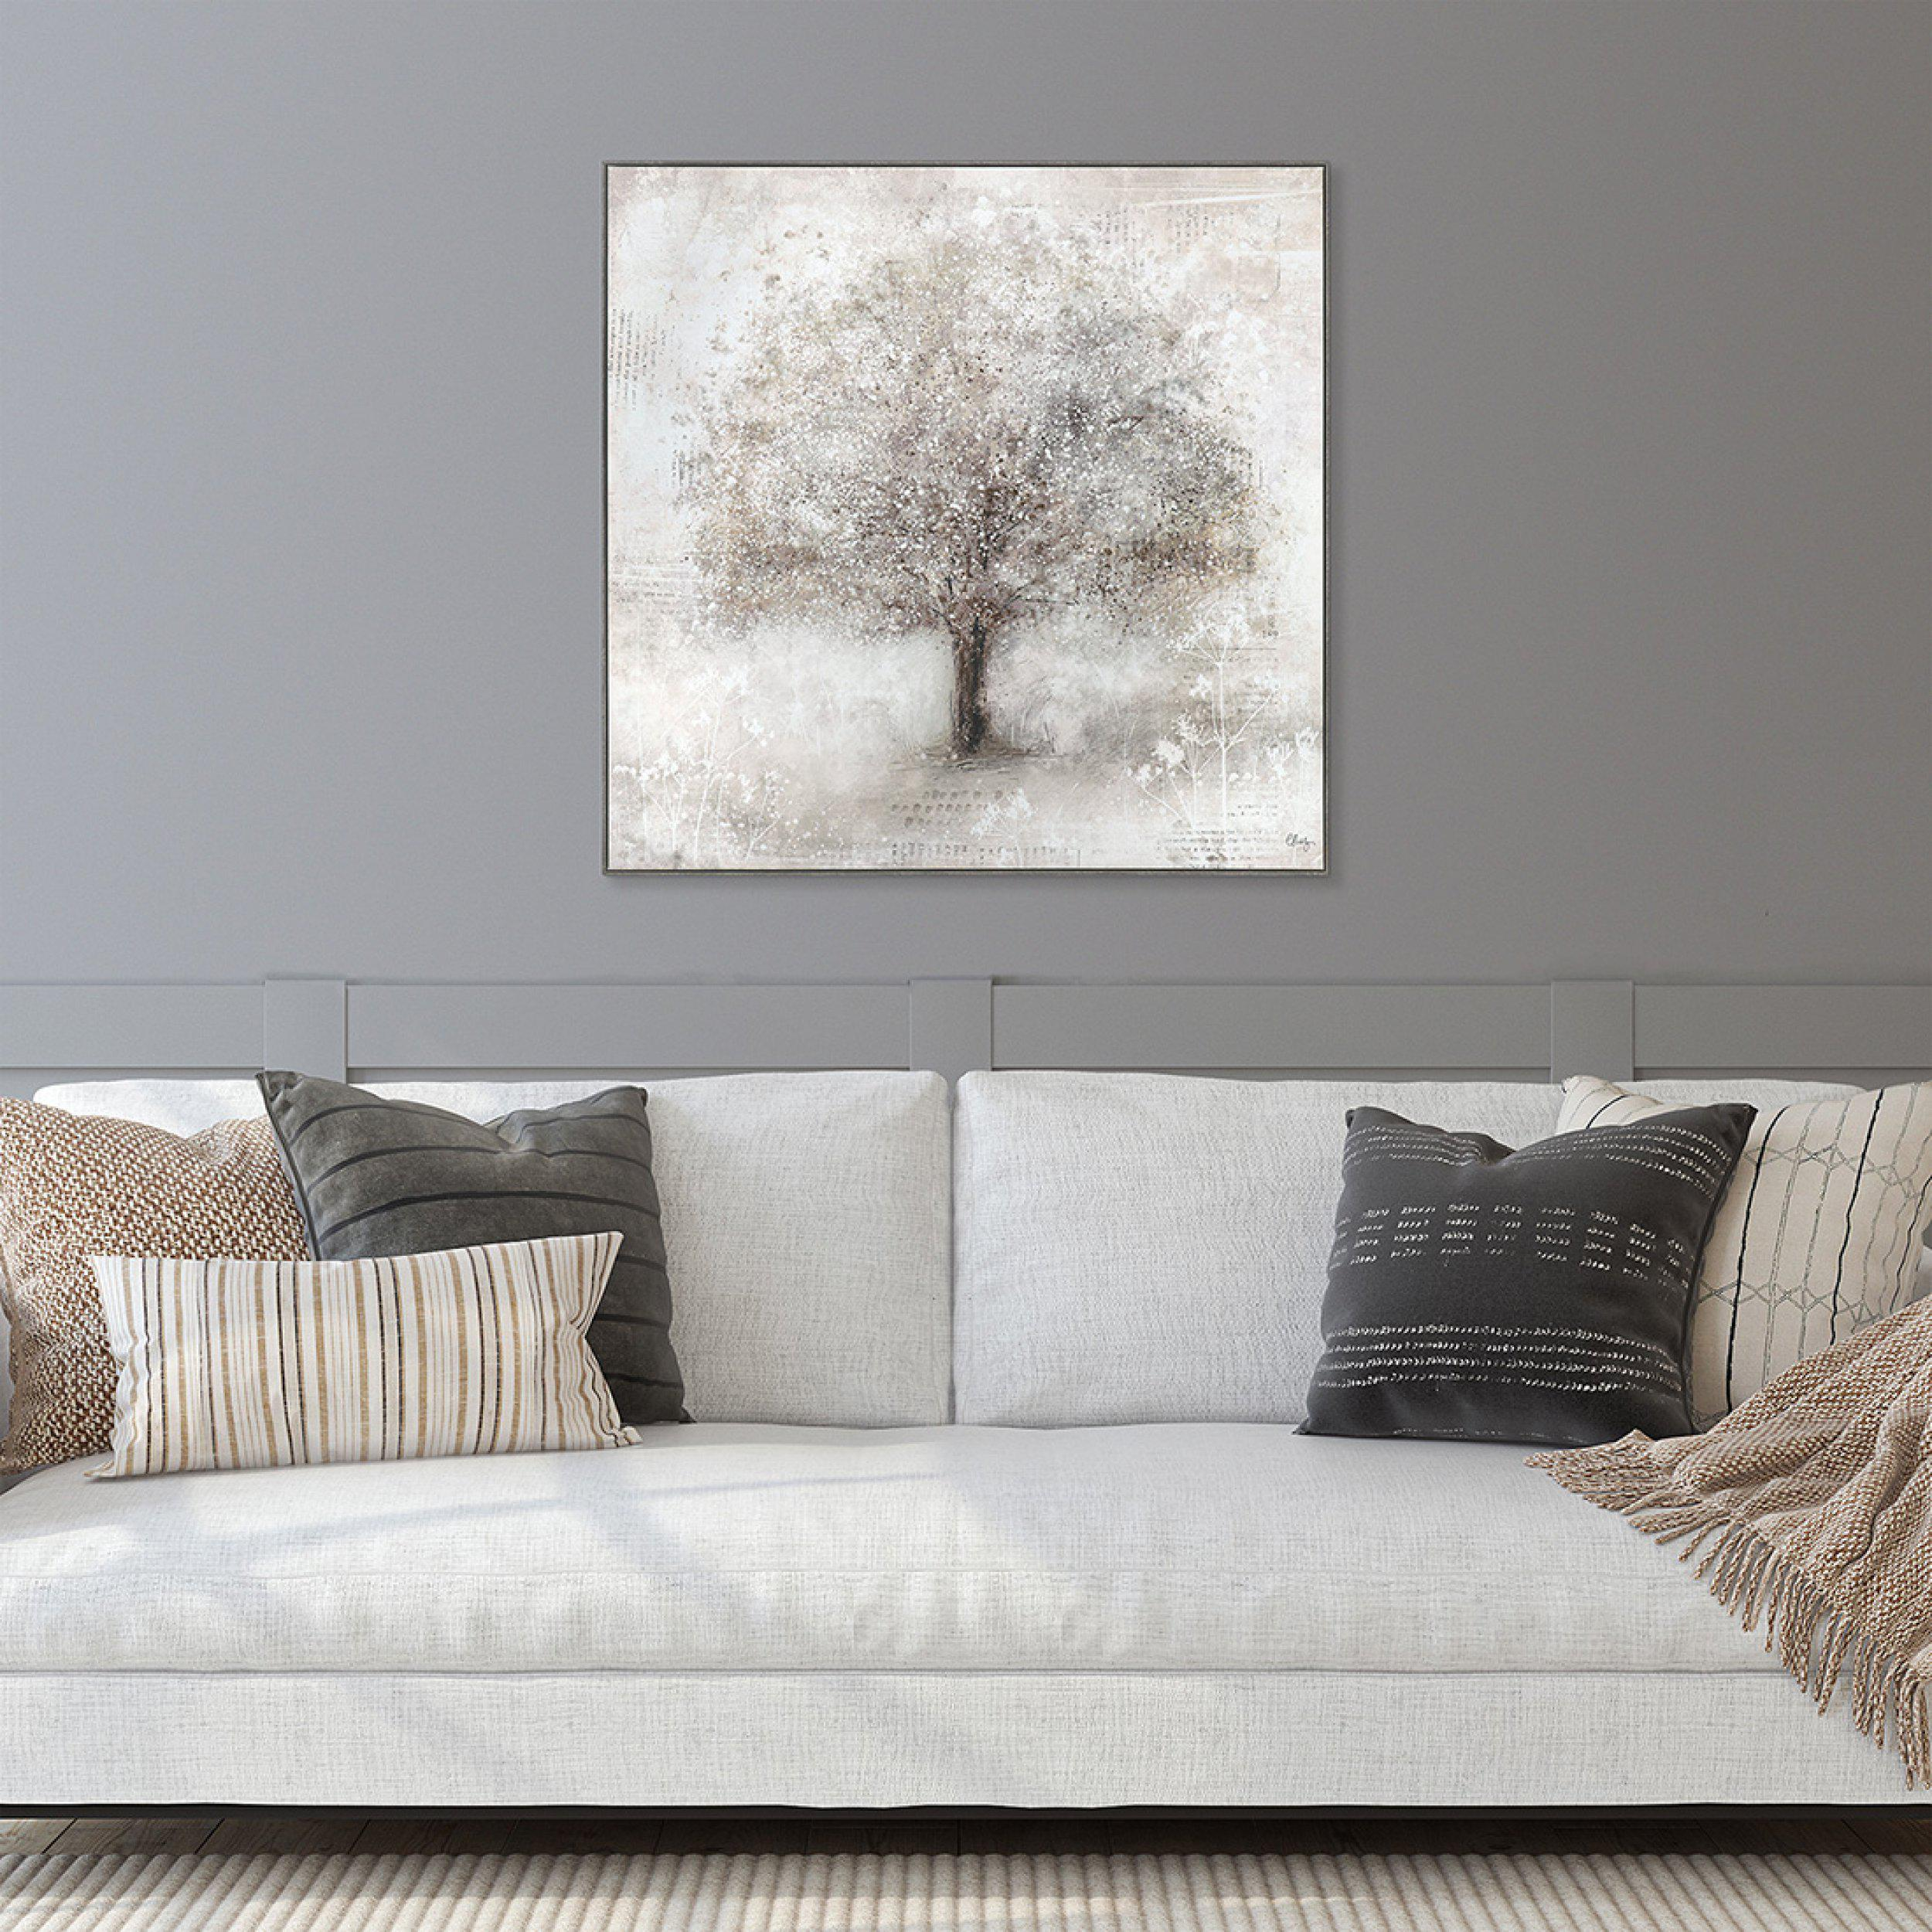 Wall Art Gallery - Stateley Tree Painting by Artist Charlotte Oakley - Framed Print For Sale - Room Display